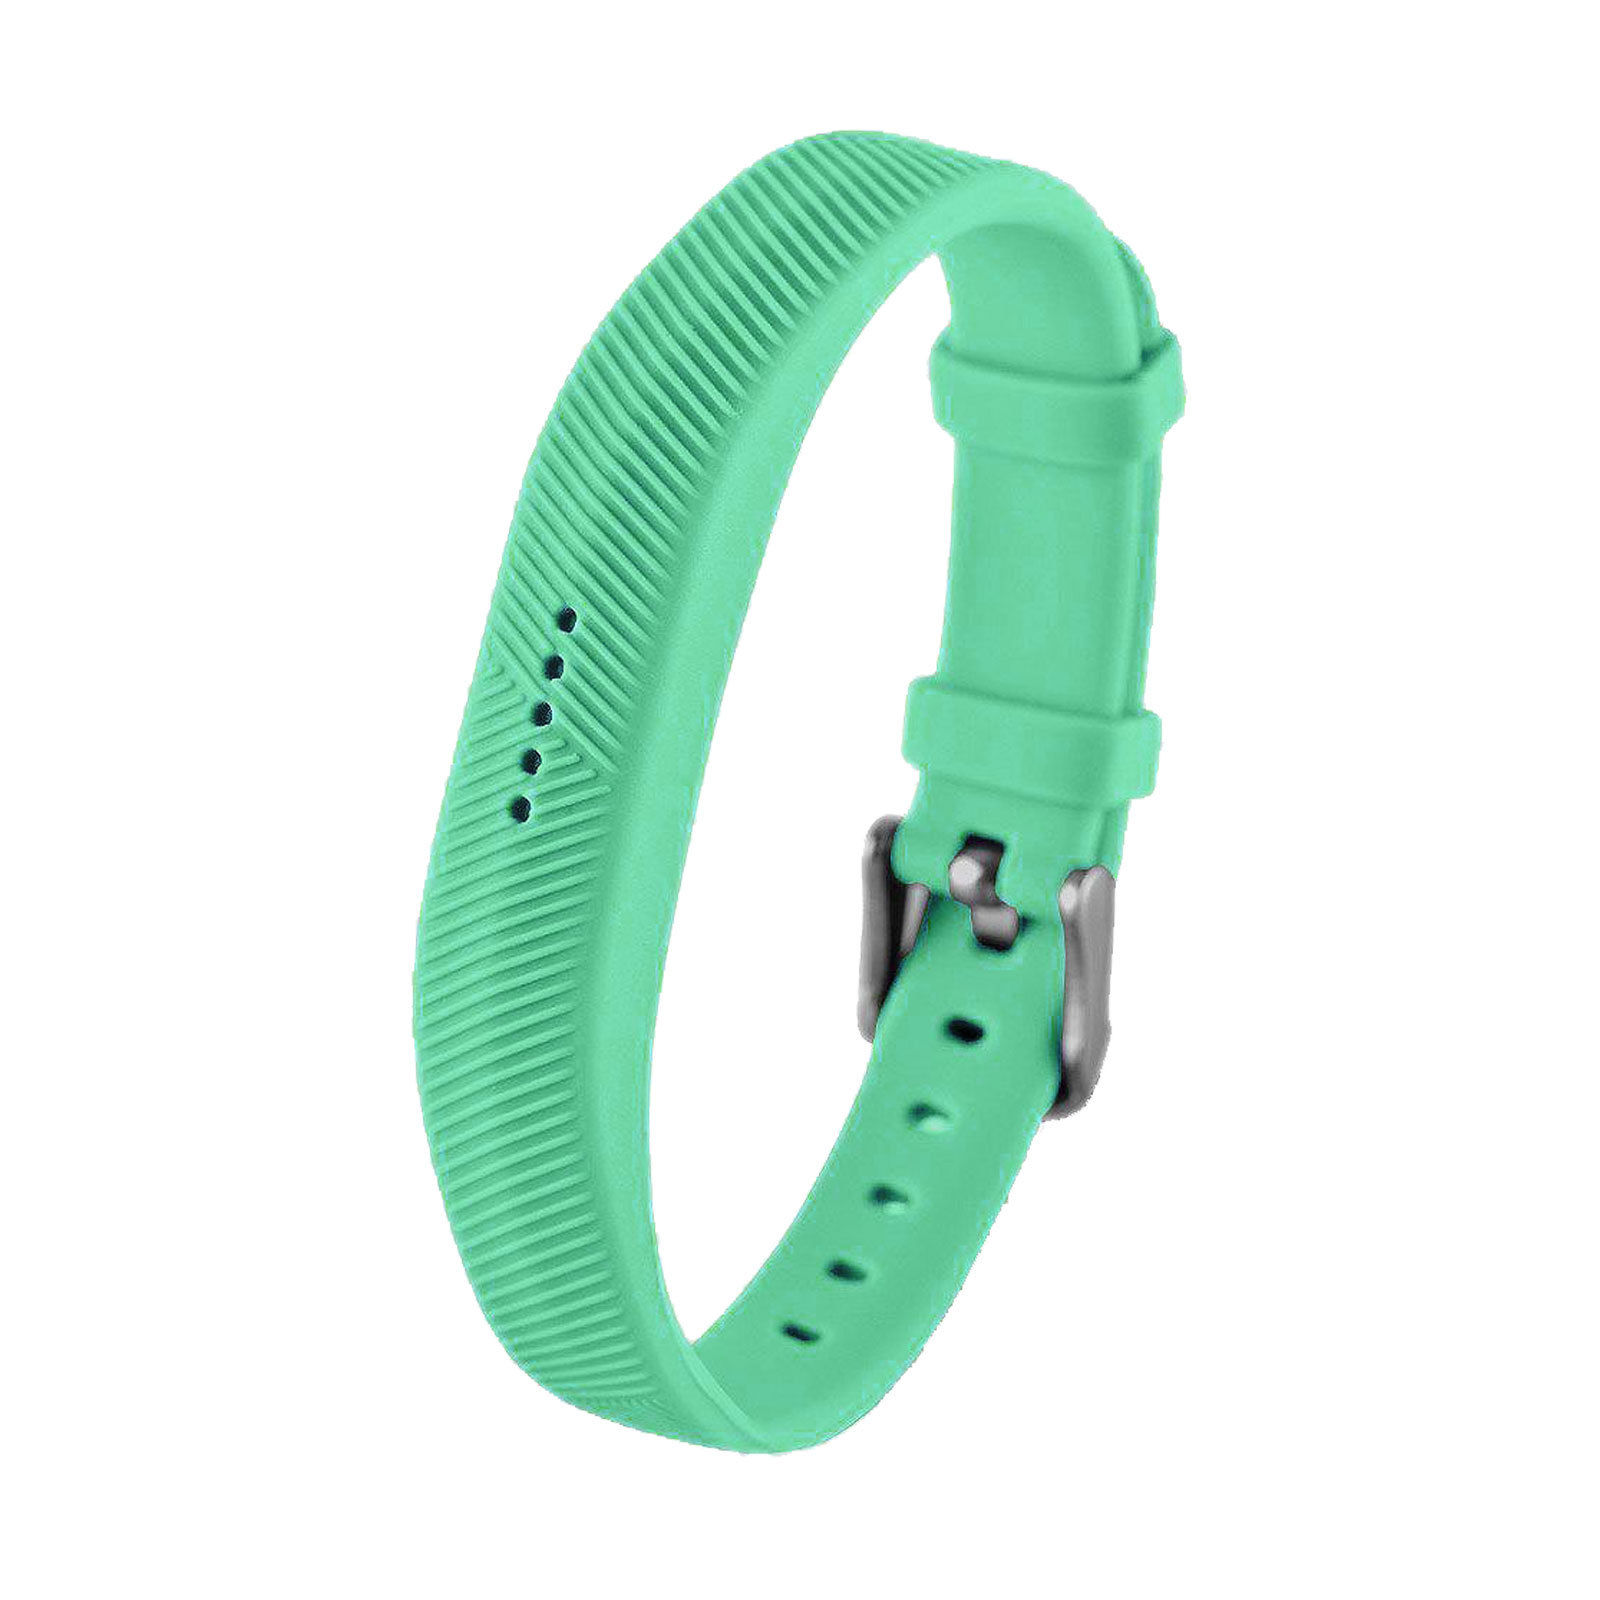 silicone strap productdetail bracelet xiaom replacement wrist mi band